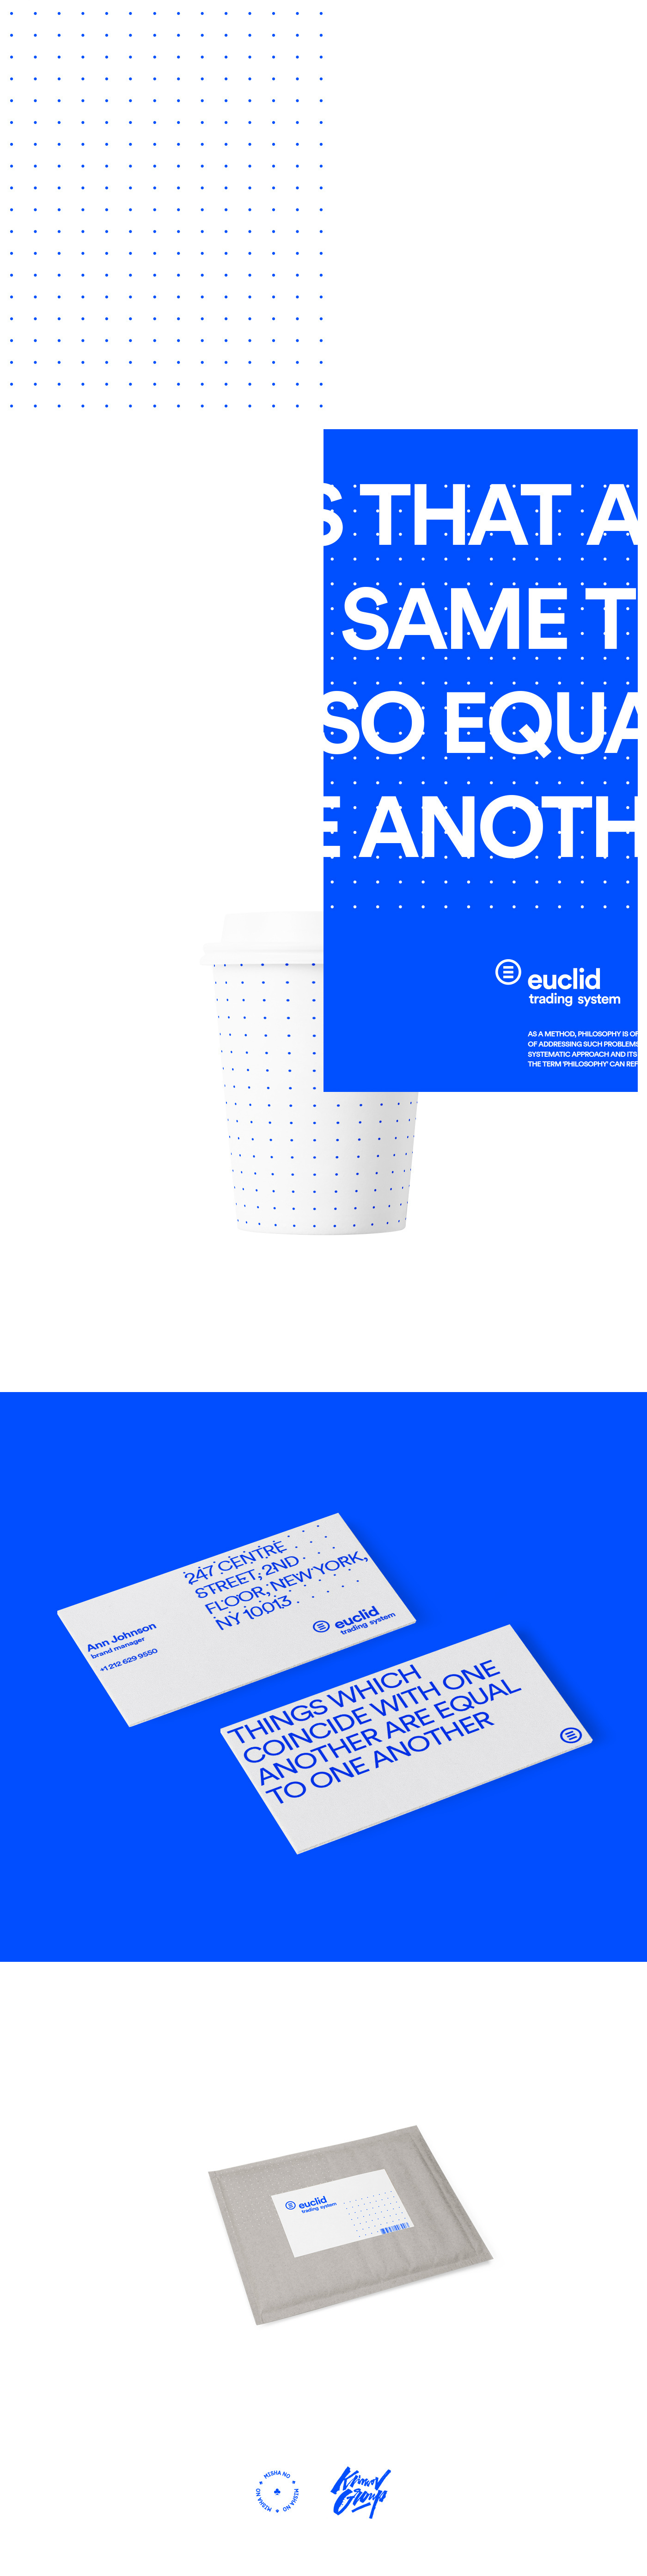 redesign identity euclid trading system logo business card